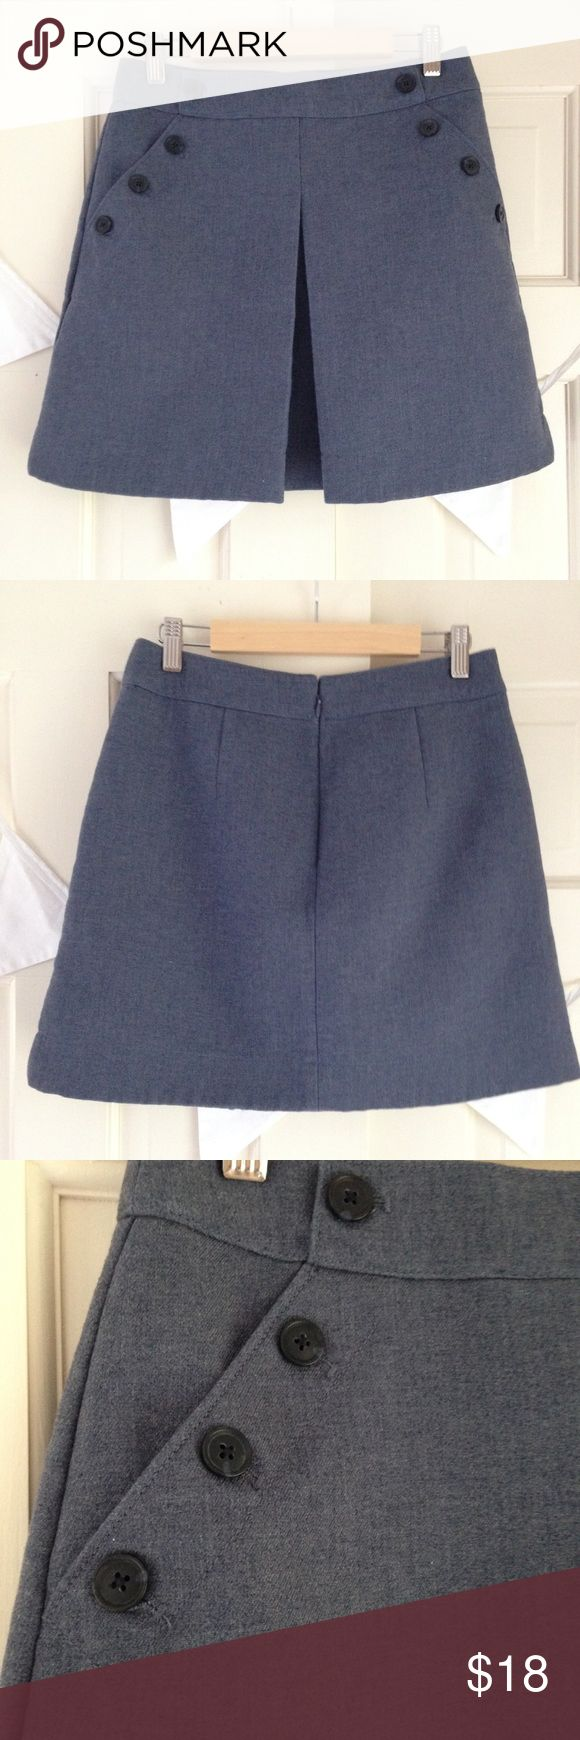 "GAP Sailor Mini Skirt Navy Melange Button Detail Cute GAP Sailor Mini in excellent preloved condition. This nautical skirt is heavier like wool (but a poly cotton blend) and is a lovely chambray looking color. Measurements laying flat approximately 14"" waist, 16"" length. GAP Skirts Mini"